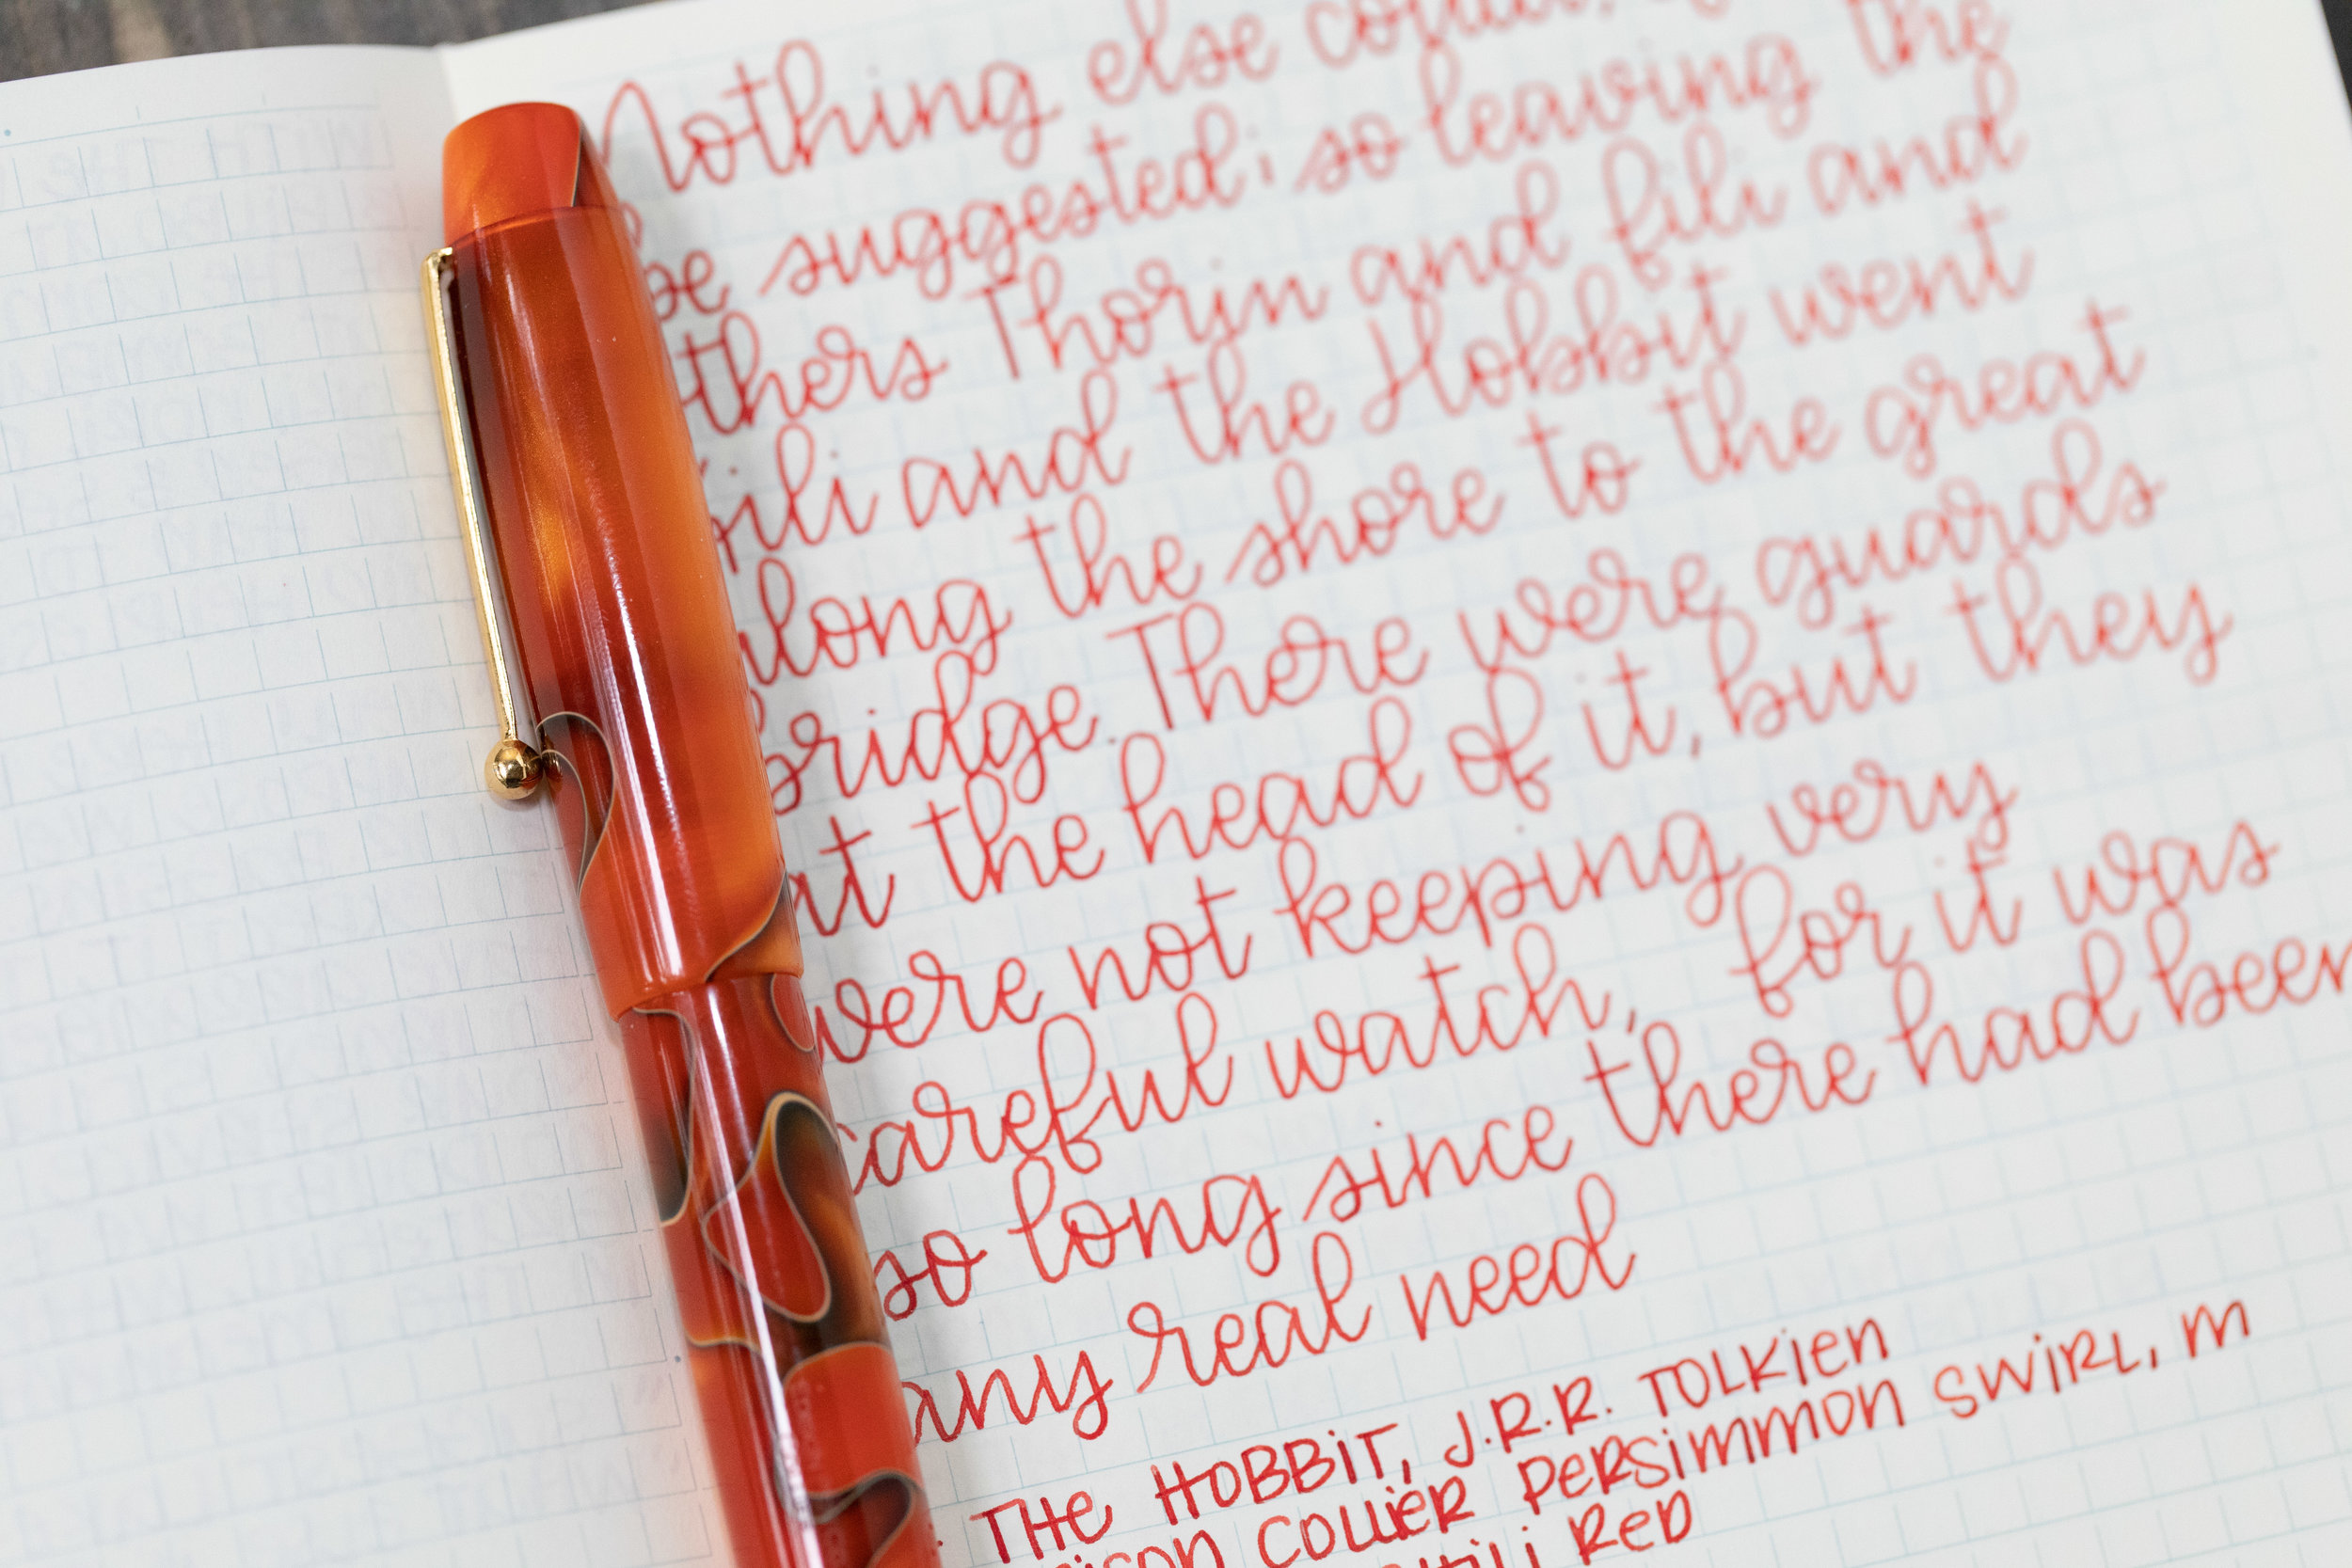 I used a medium Edison Collier Persimmon Swirl on a Midori MD Notebook. The ink had a dry flow, but did not have any skipping issues in this pen.